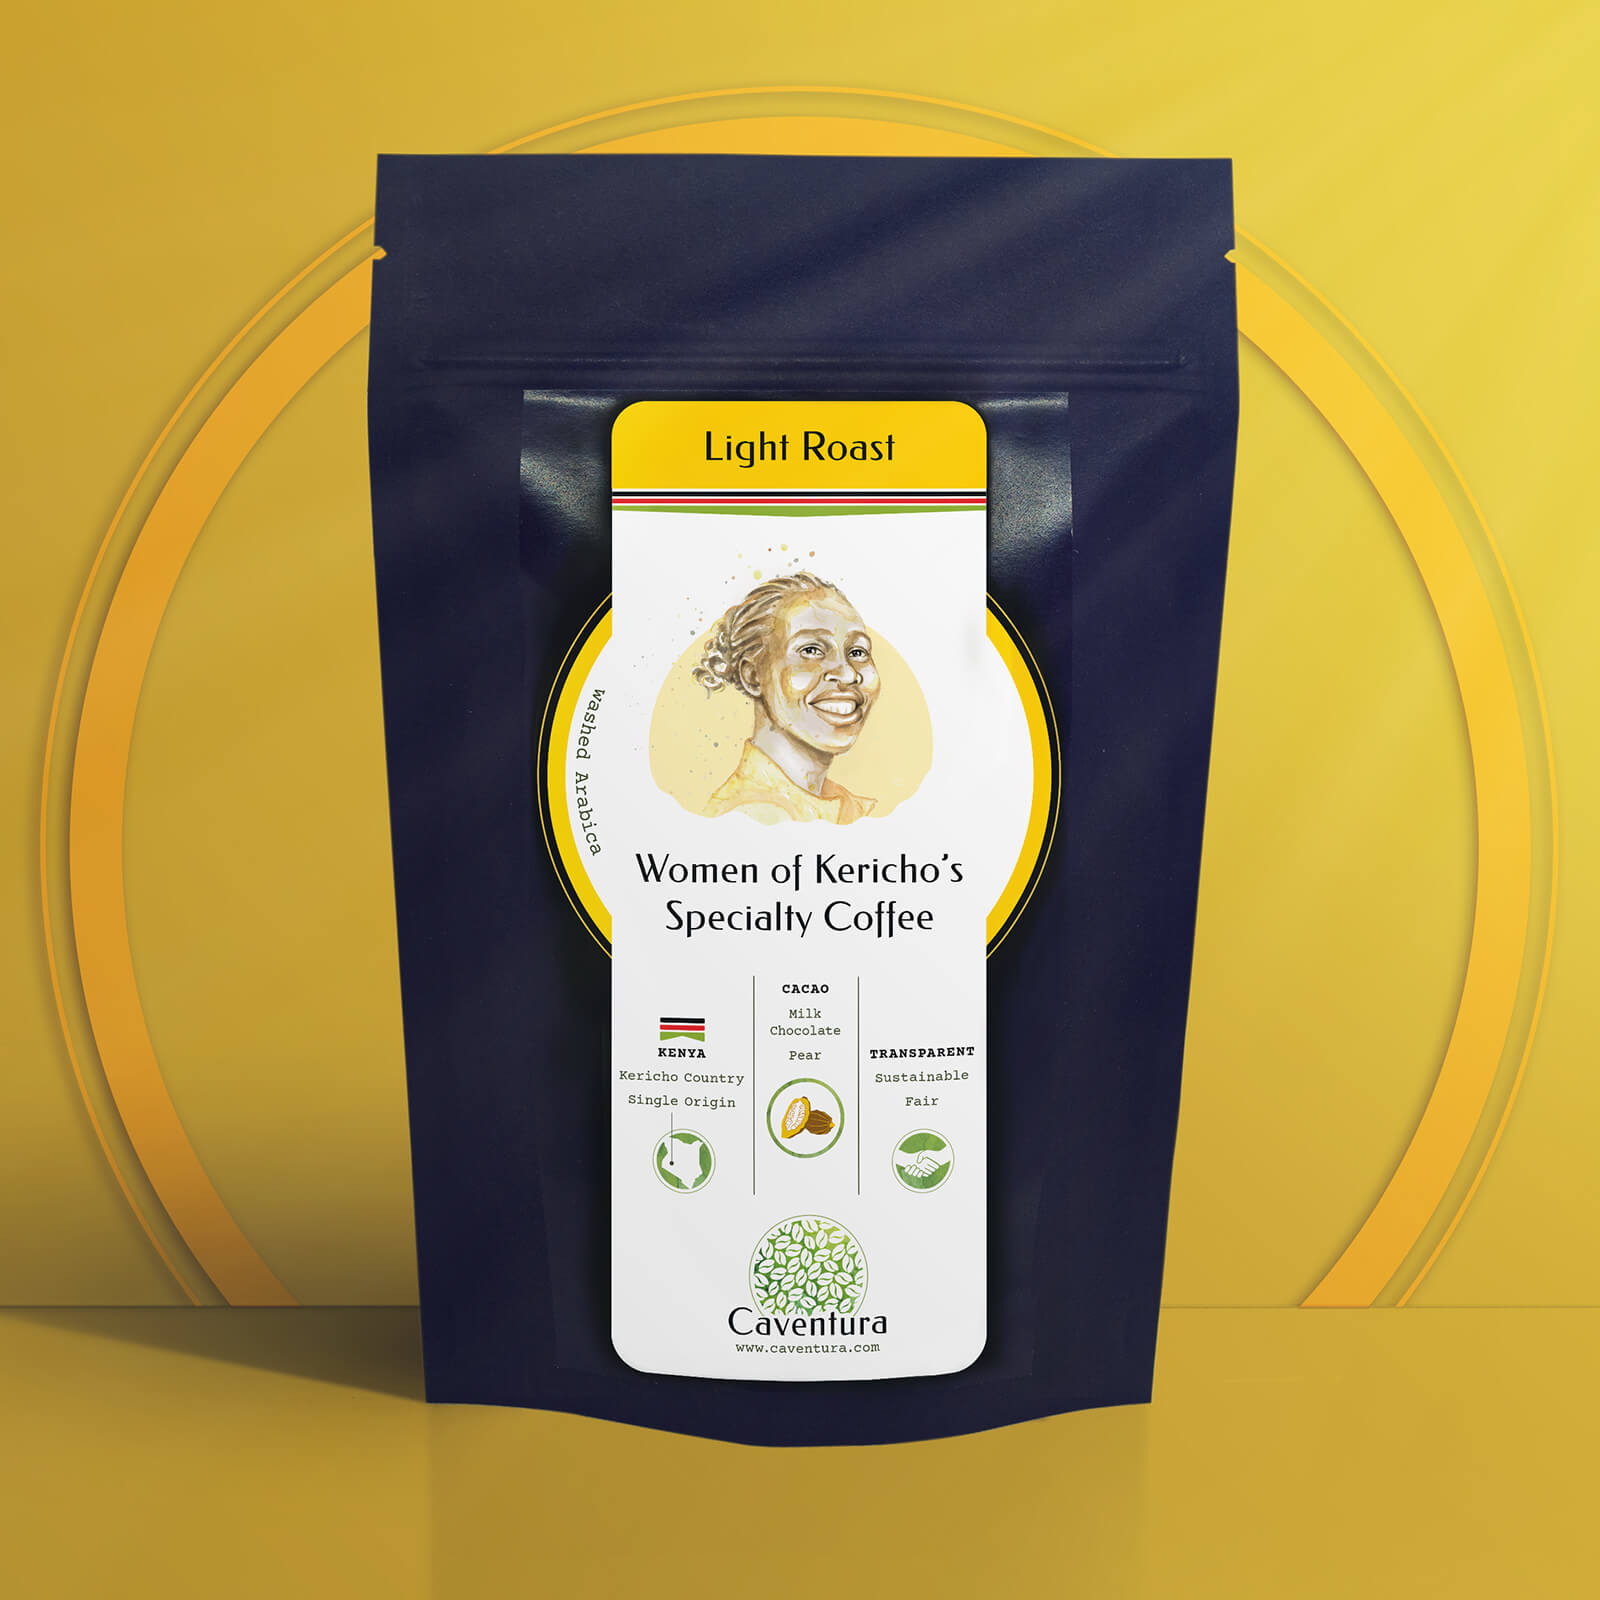 Women of Kericho's Specialty Coffee – Light Roast